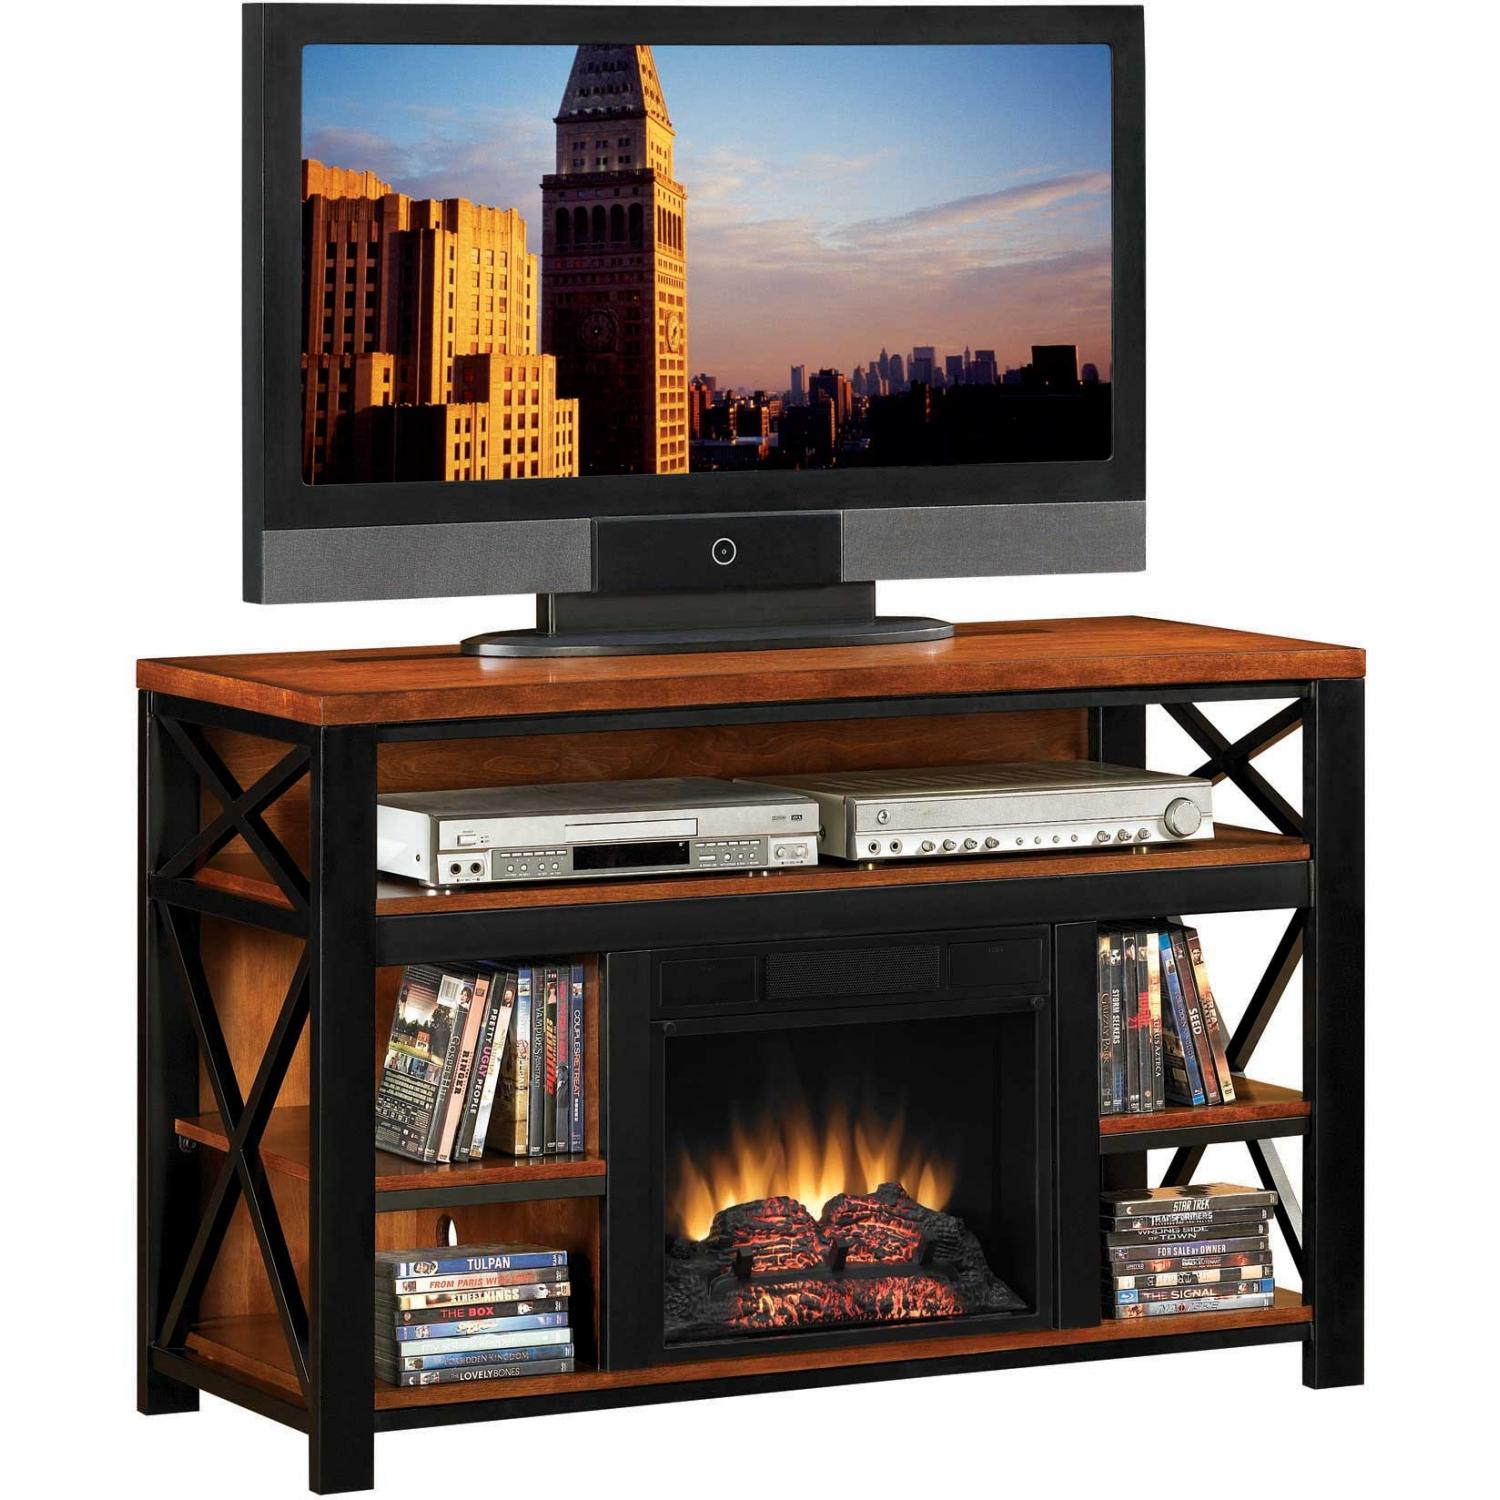 ClassicFlame 18MM3207- M250 Advantage Equinox Electric Fireplace With Media Console - Rustic Birch With Black Metal